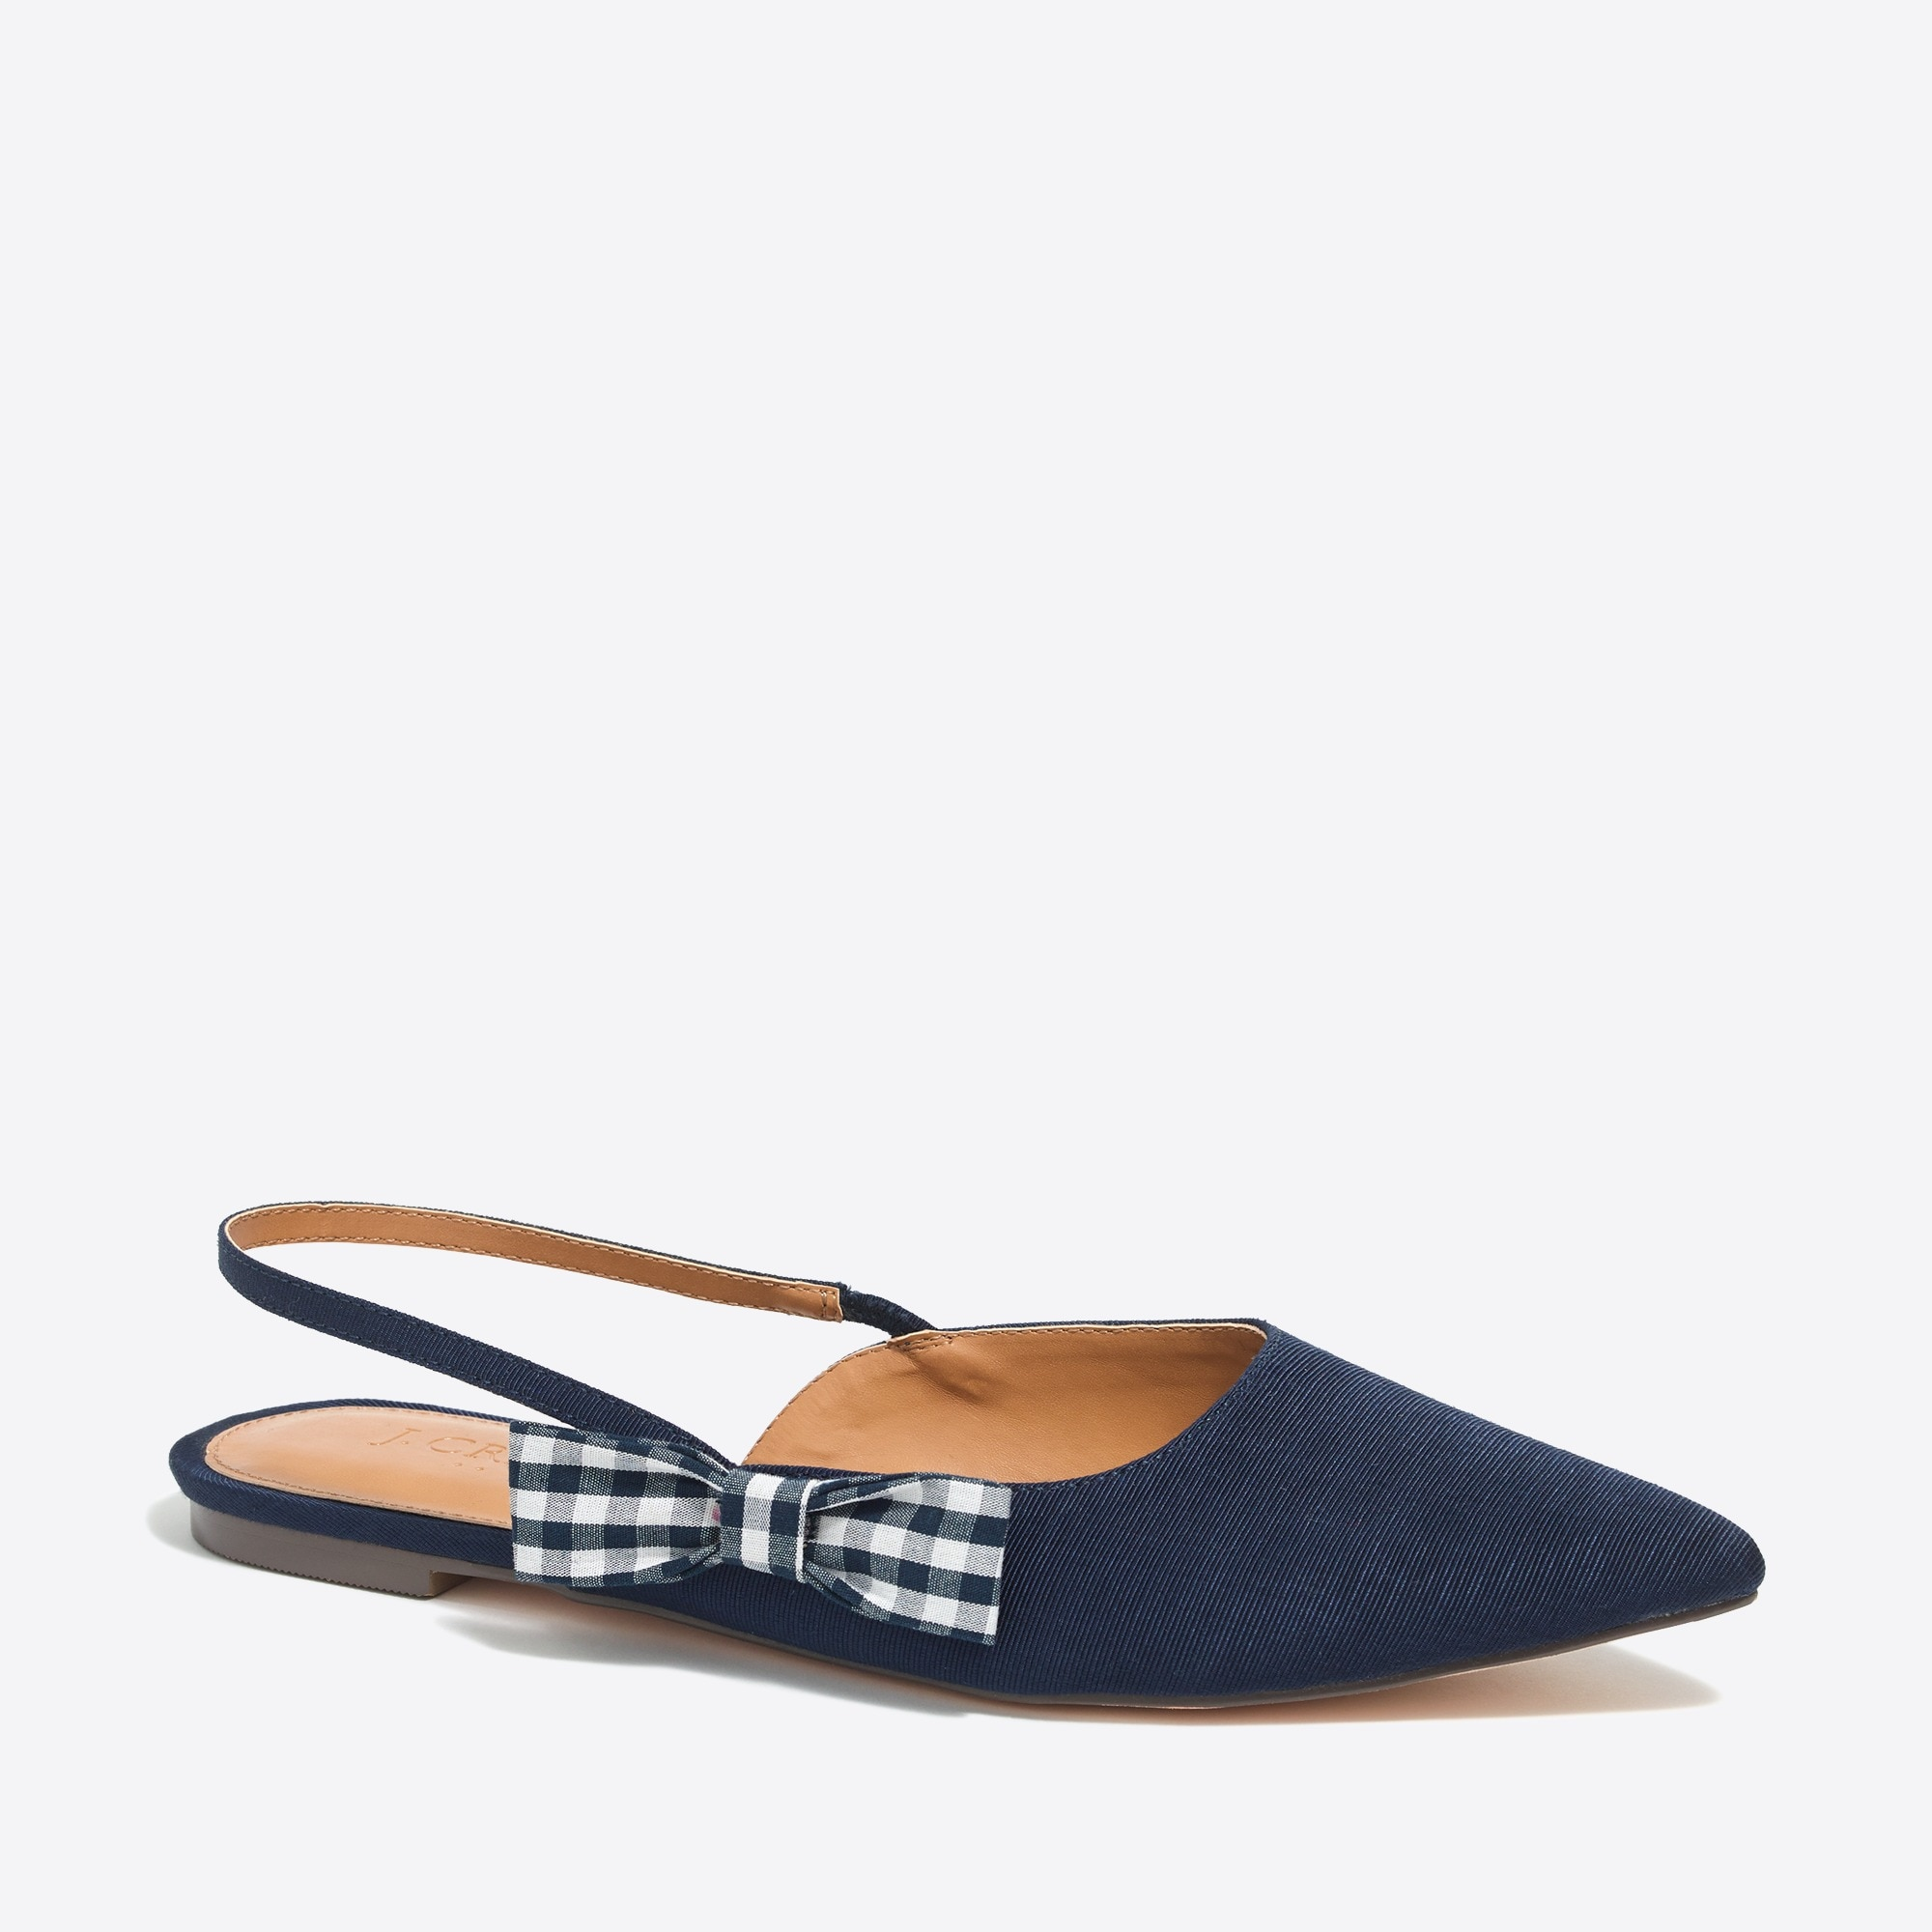 Image 1 for Slingback flats with gingham bow